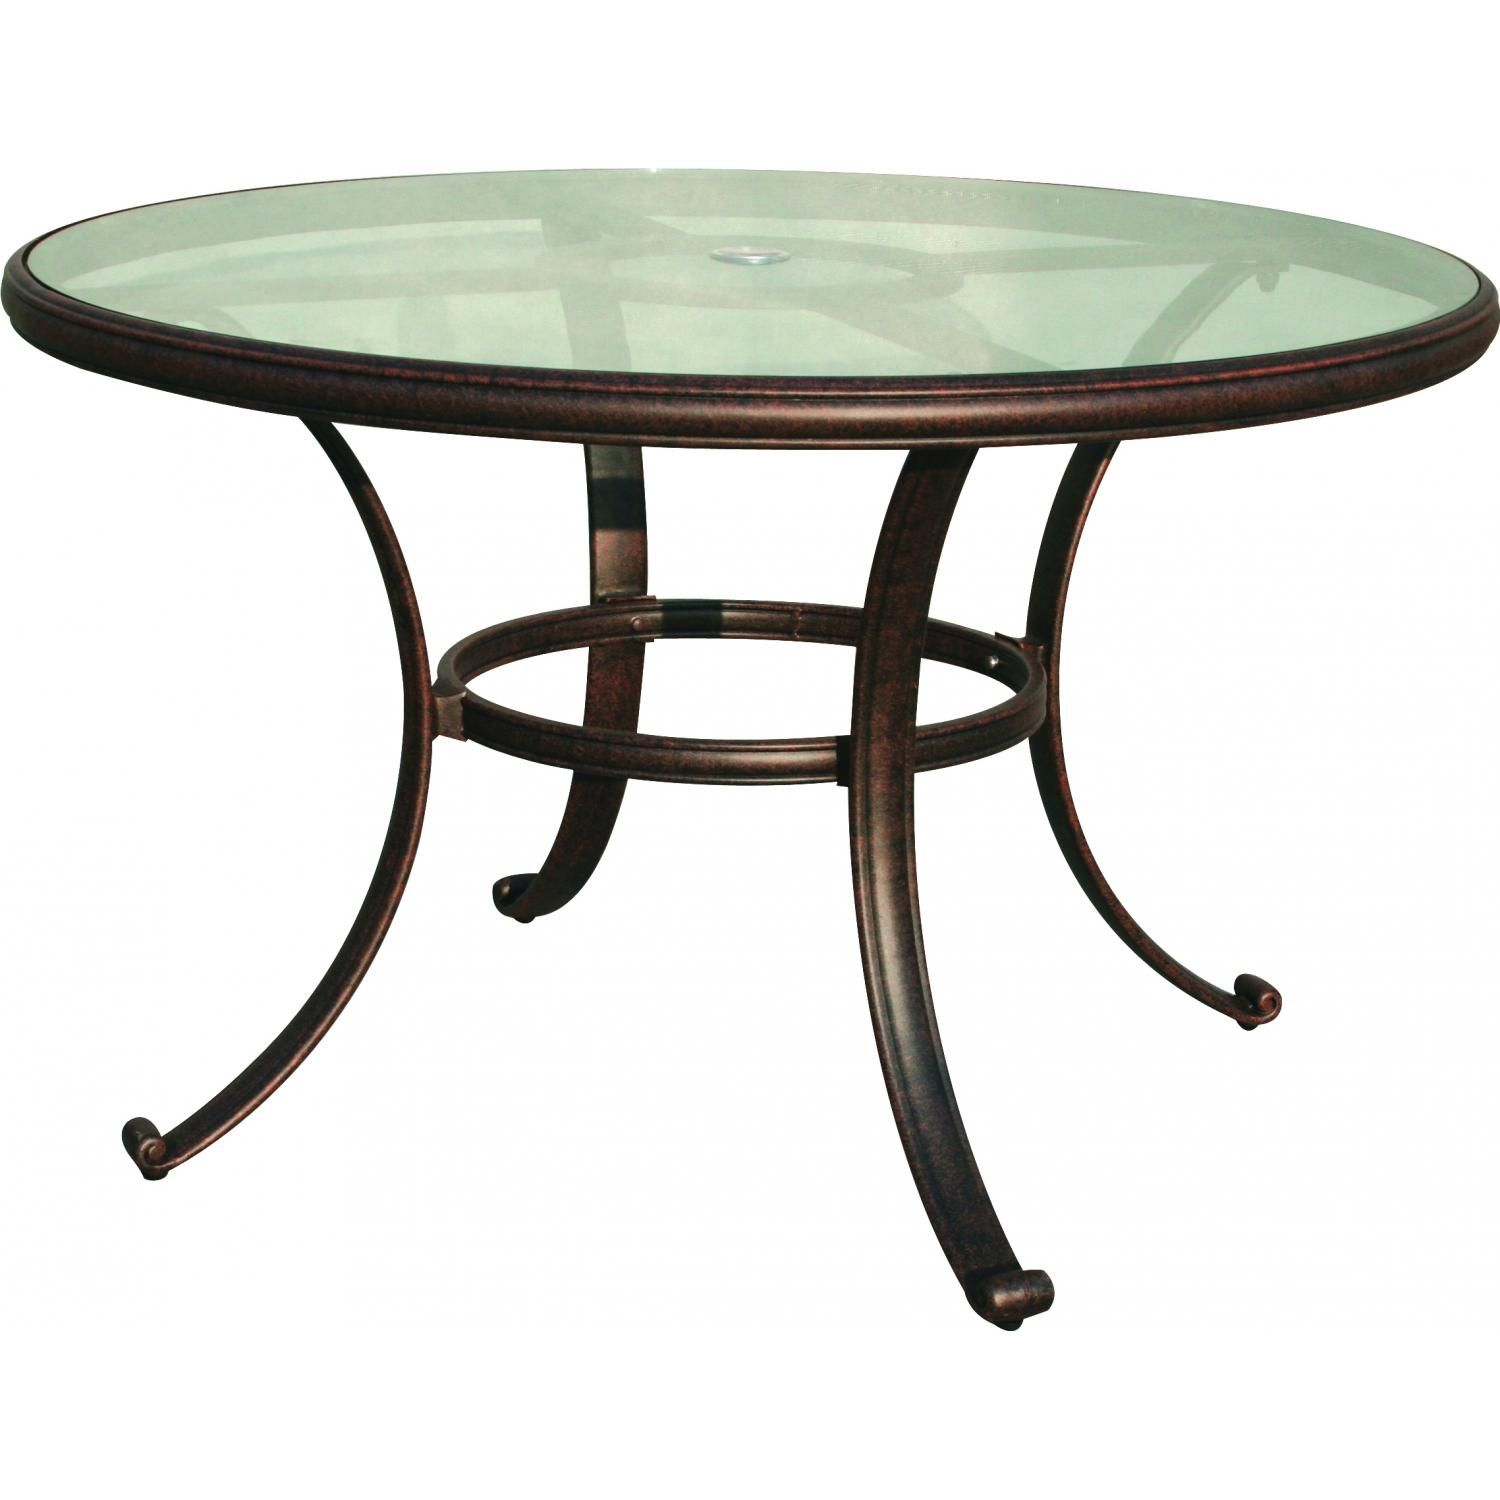 How Much Does Darlee Cast Aluminum Glass Top Round Dining Table, Antique  Bronze Finish Cost?